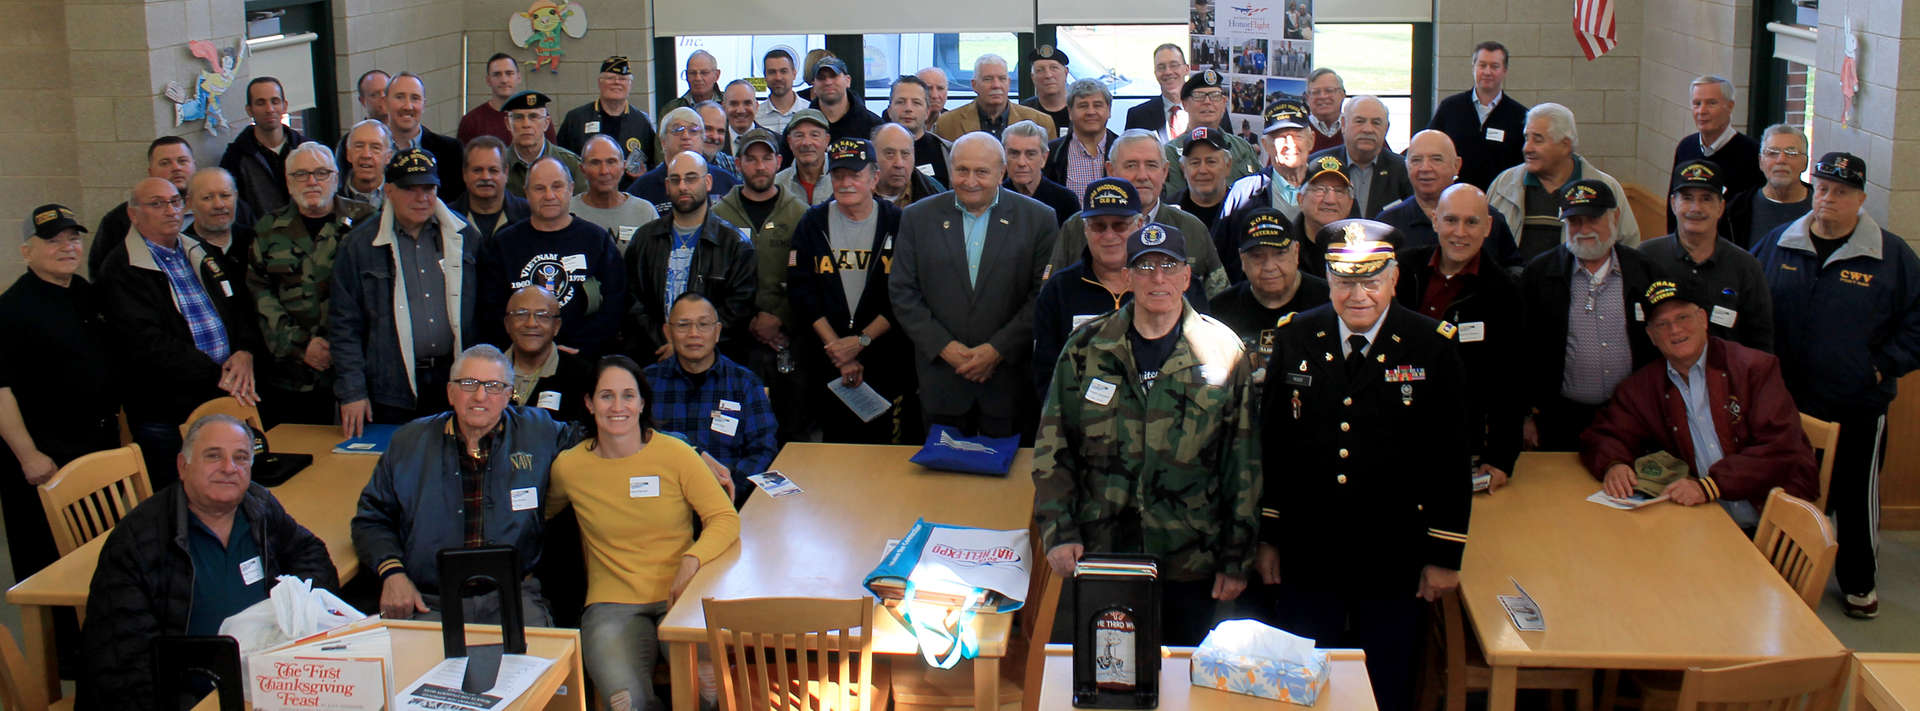 Large group of veterans gather in library